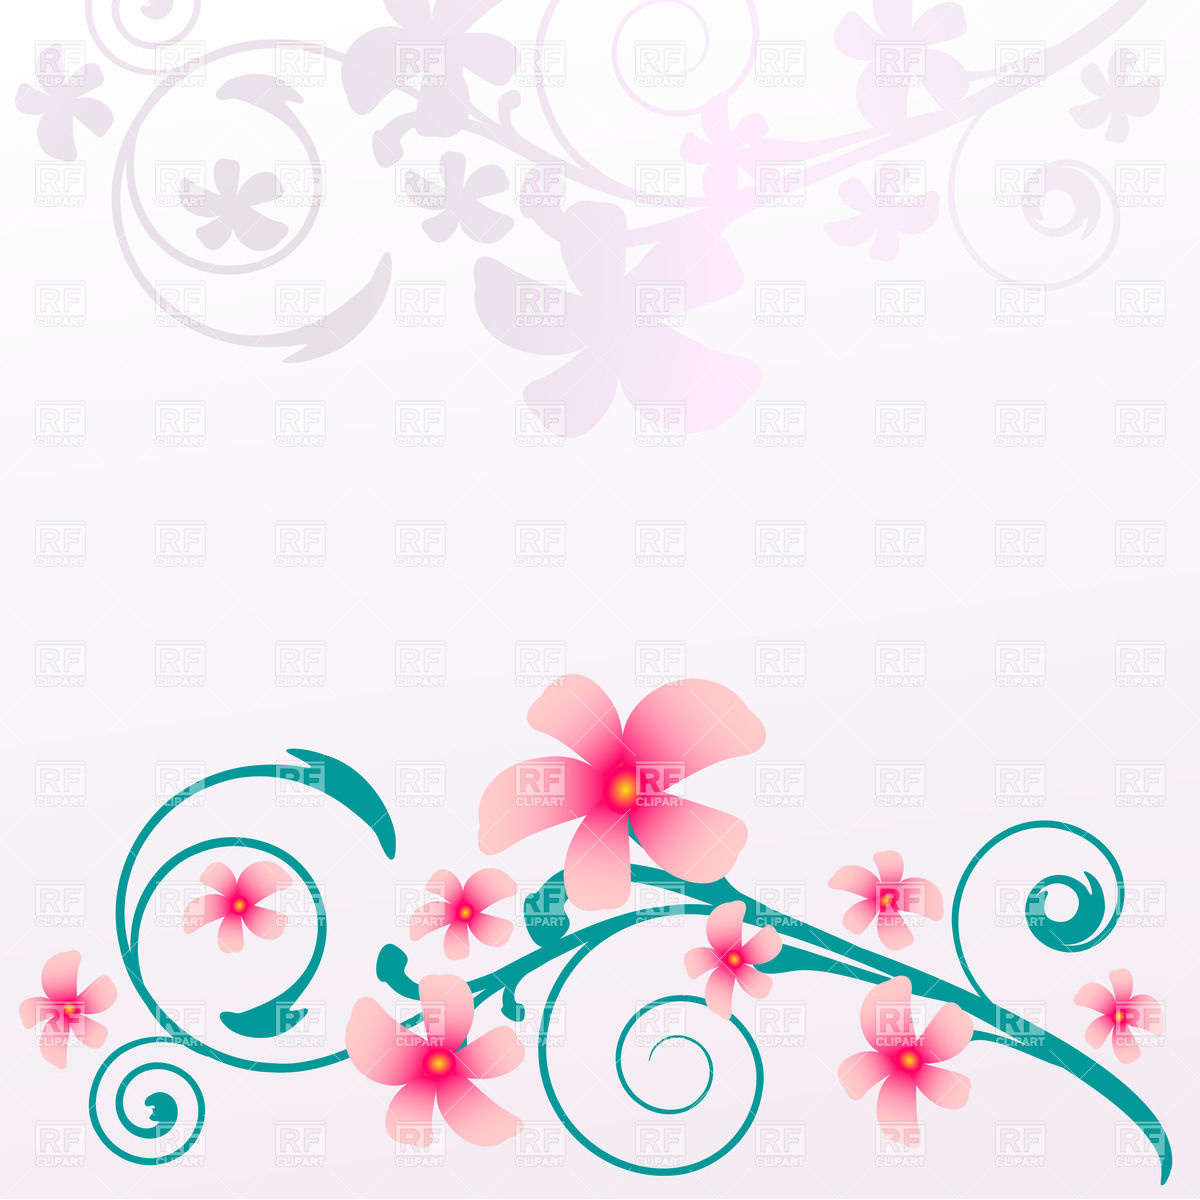 Curly twig with blooming pink flowers Vector Image #23335.